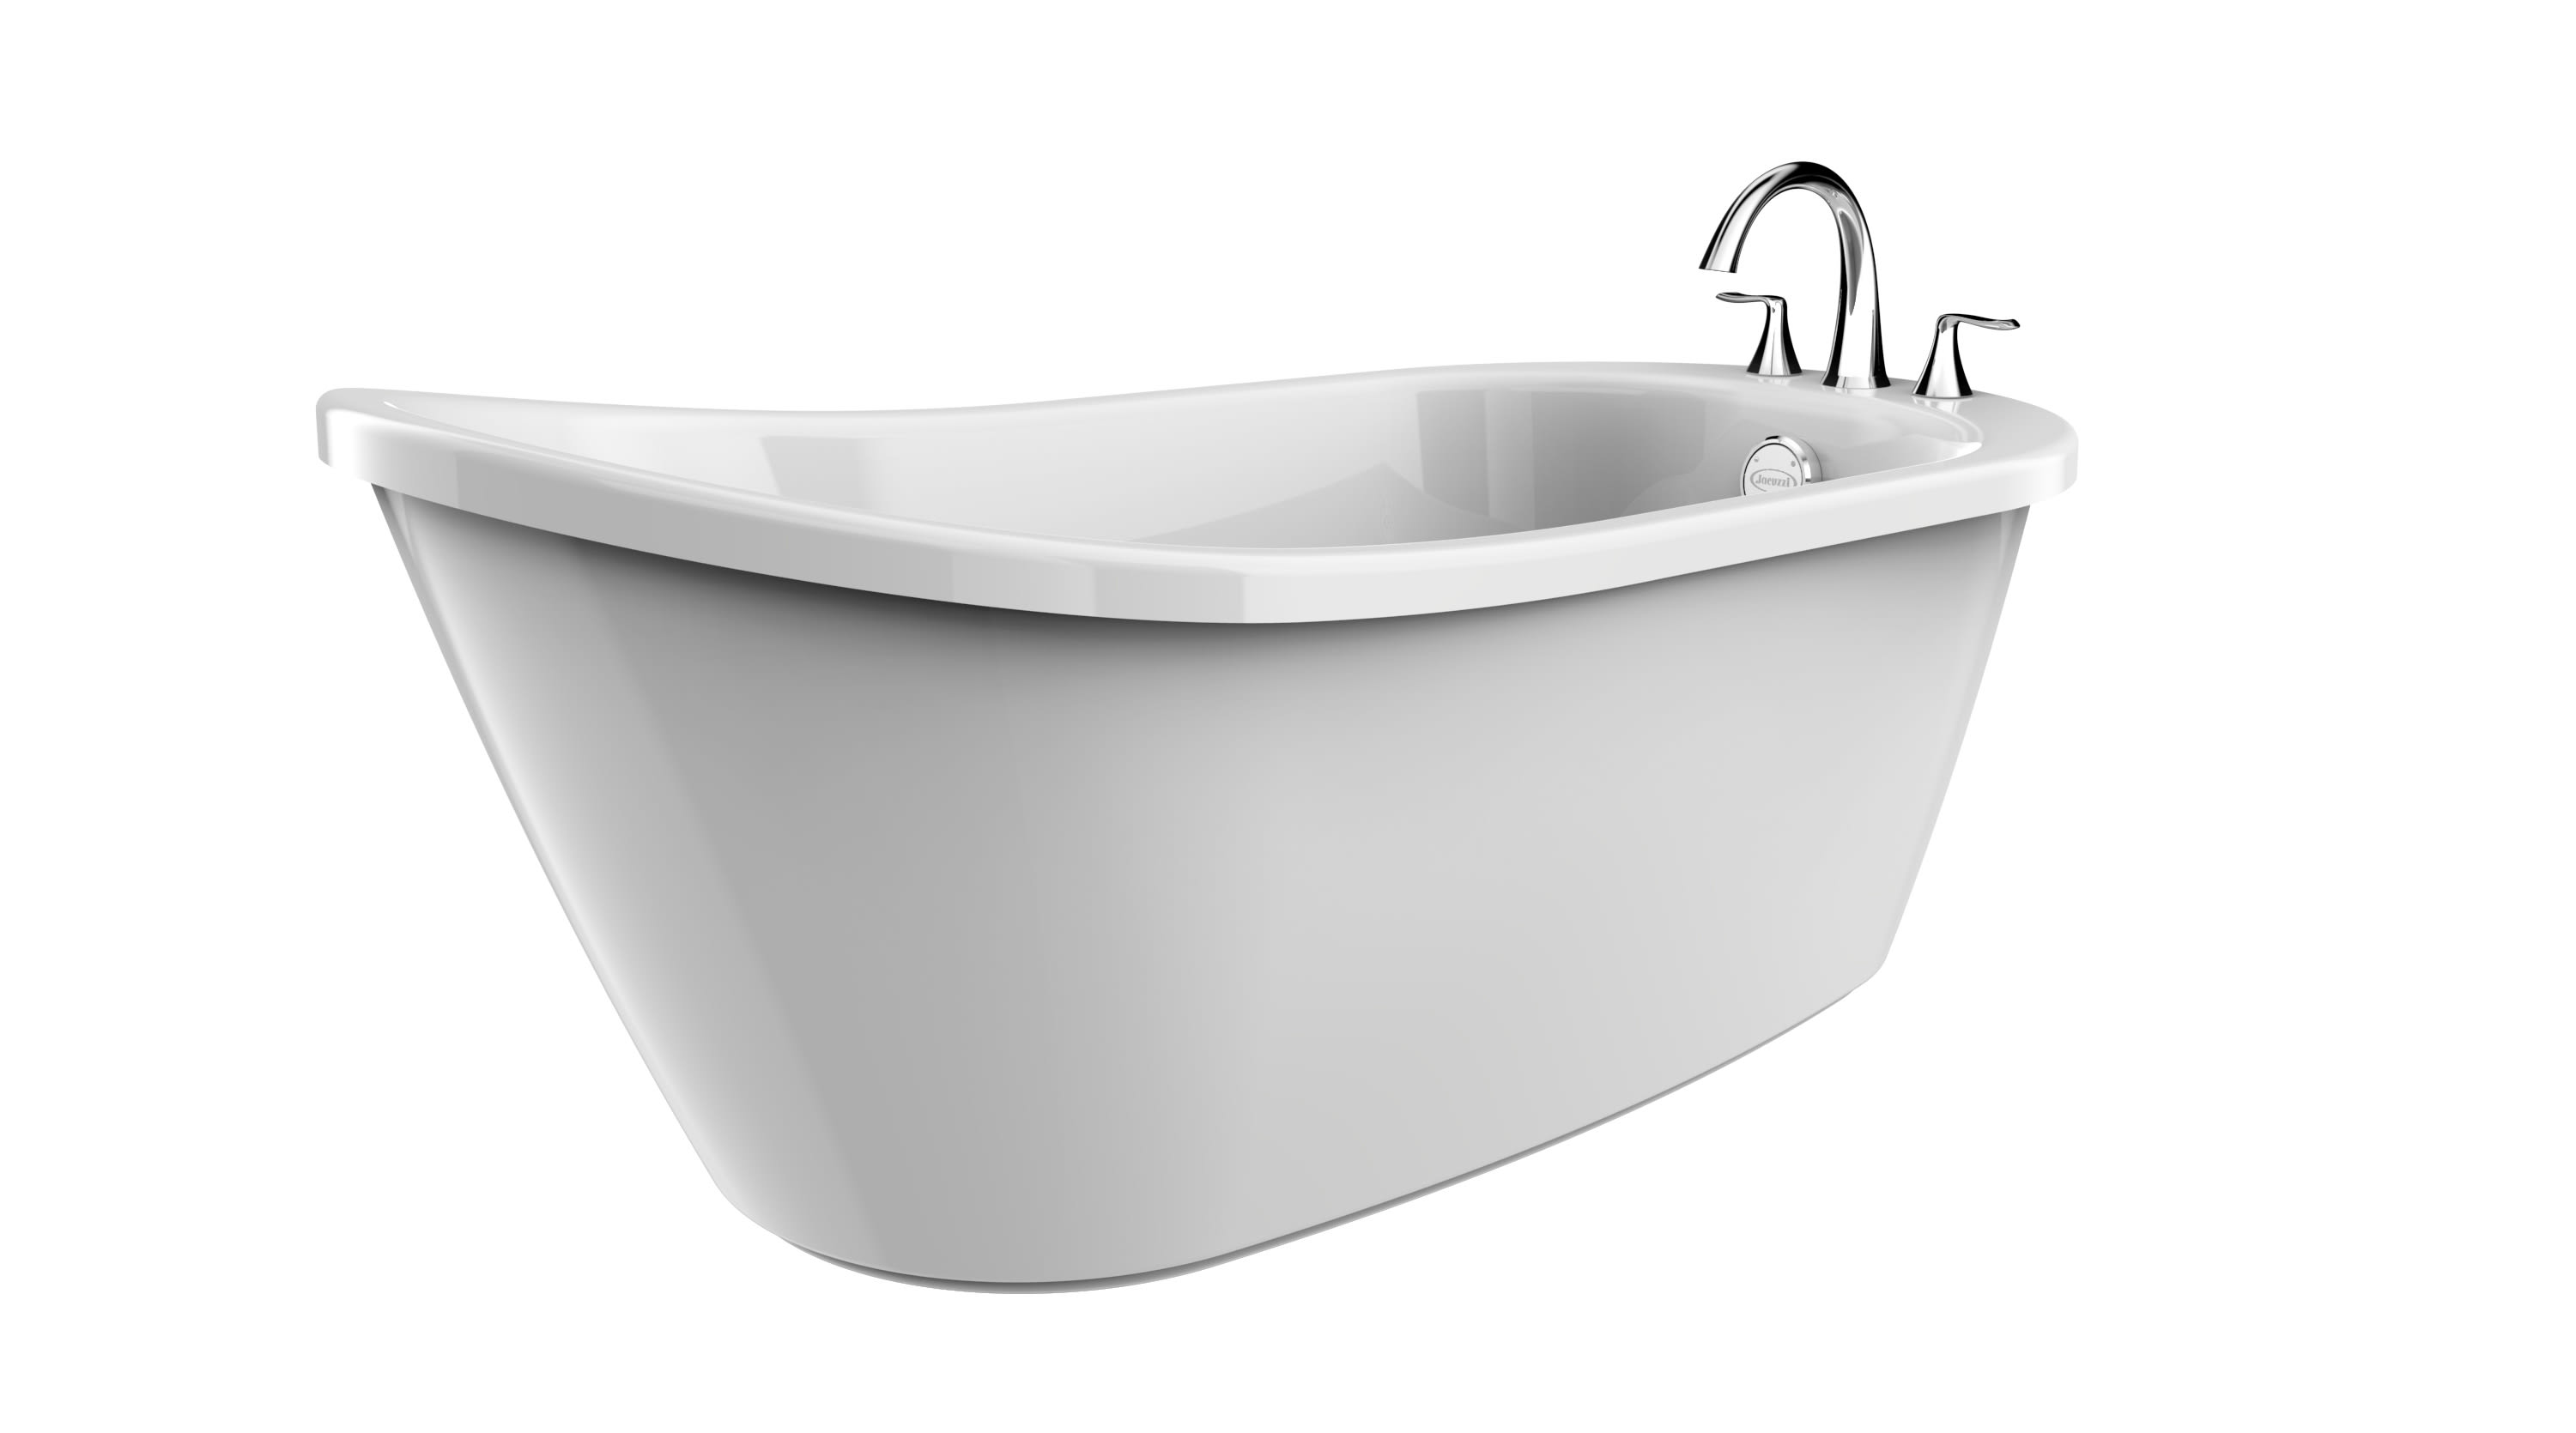 freestanding tag idea surround h w articles full with x acrylic inch duravit size bathtub